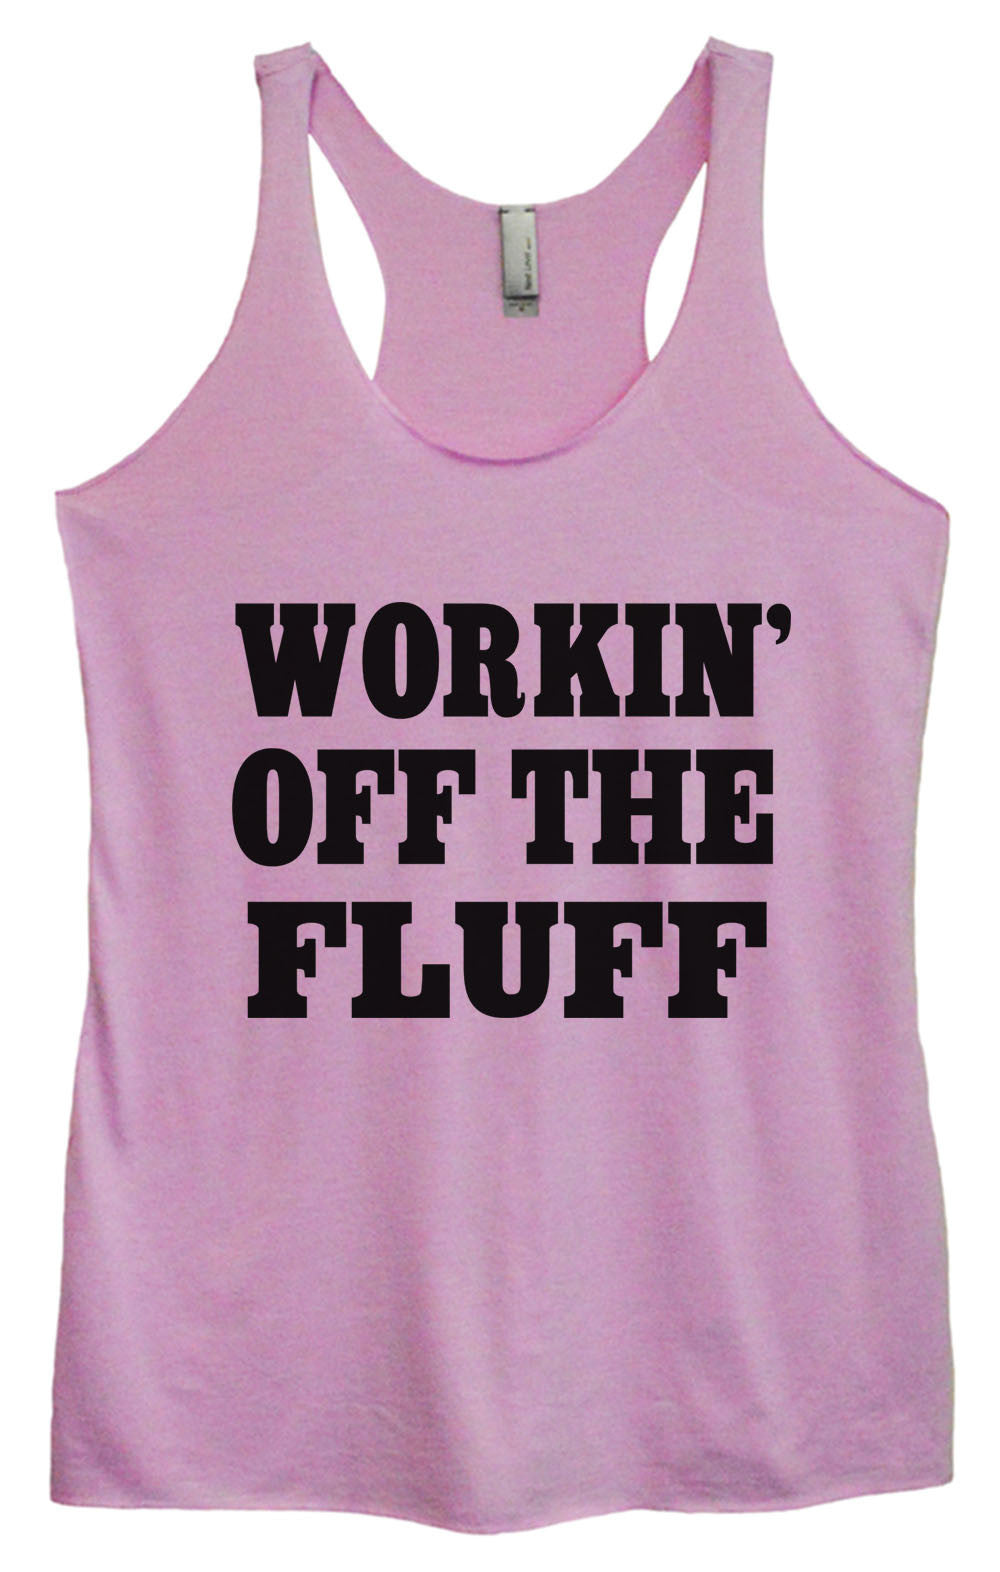 Womens Fashion Triblend Tank Top - Workin' Off The Fluff - Tri-688 - Funny Shirts Tank Tops Burnouts and Triblends  - 4